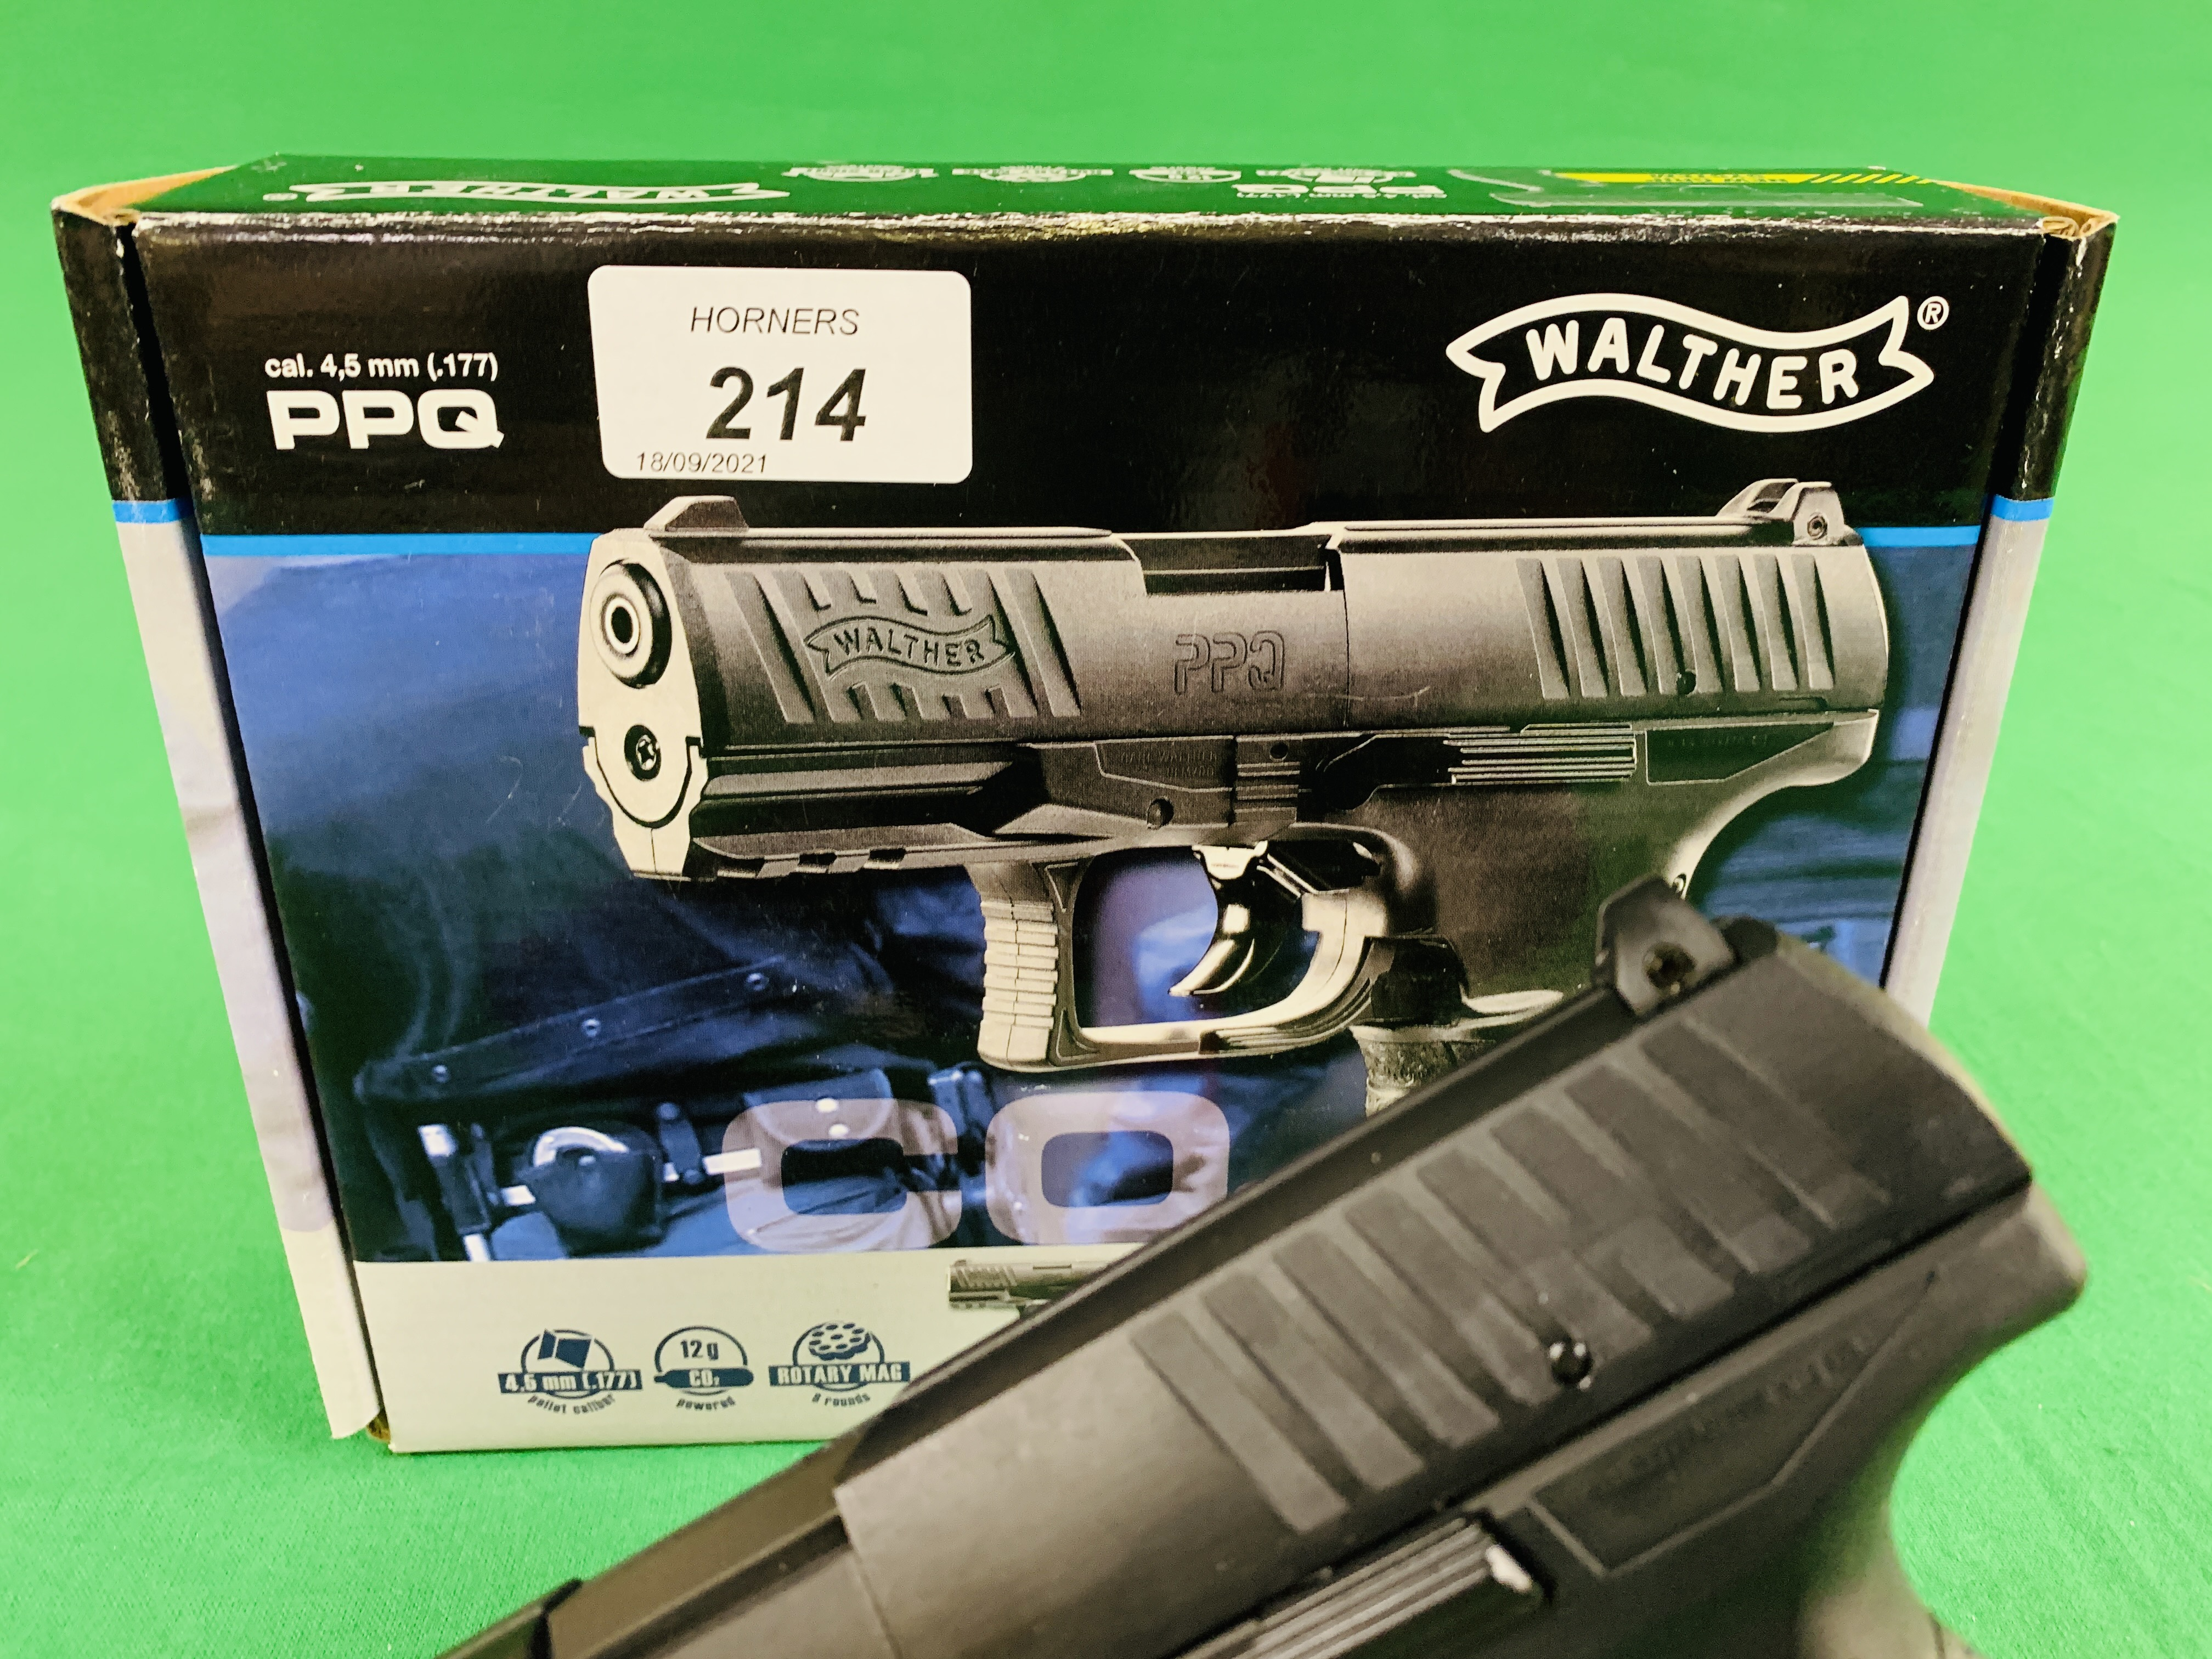 A WALTHER PPQ . - Image 5 of 6